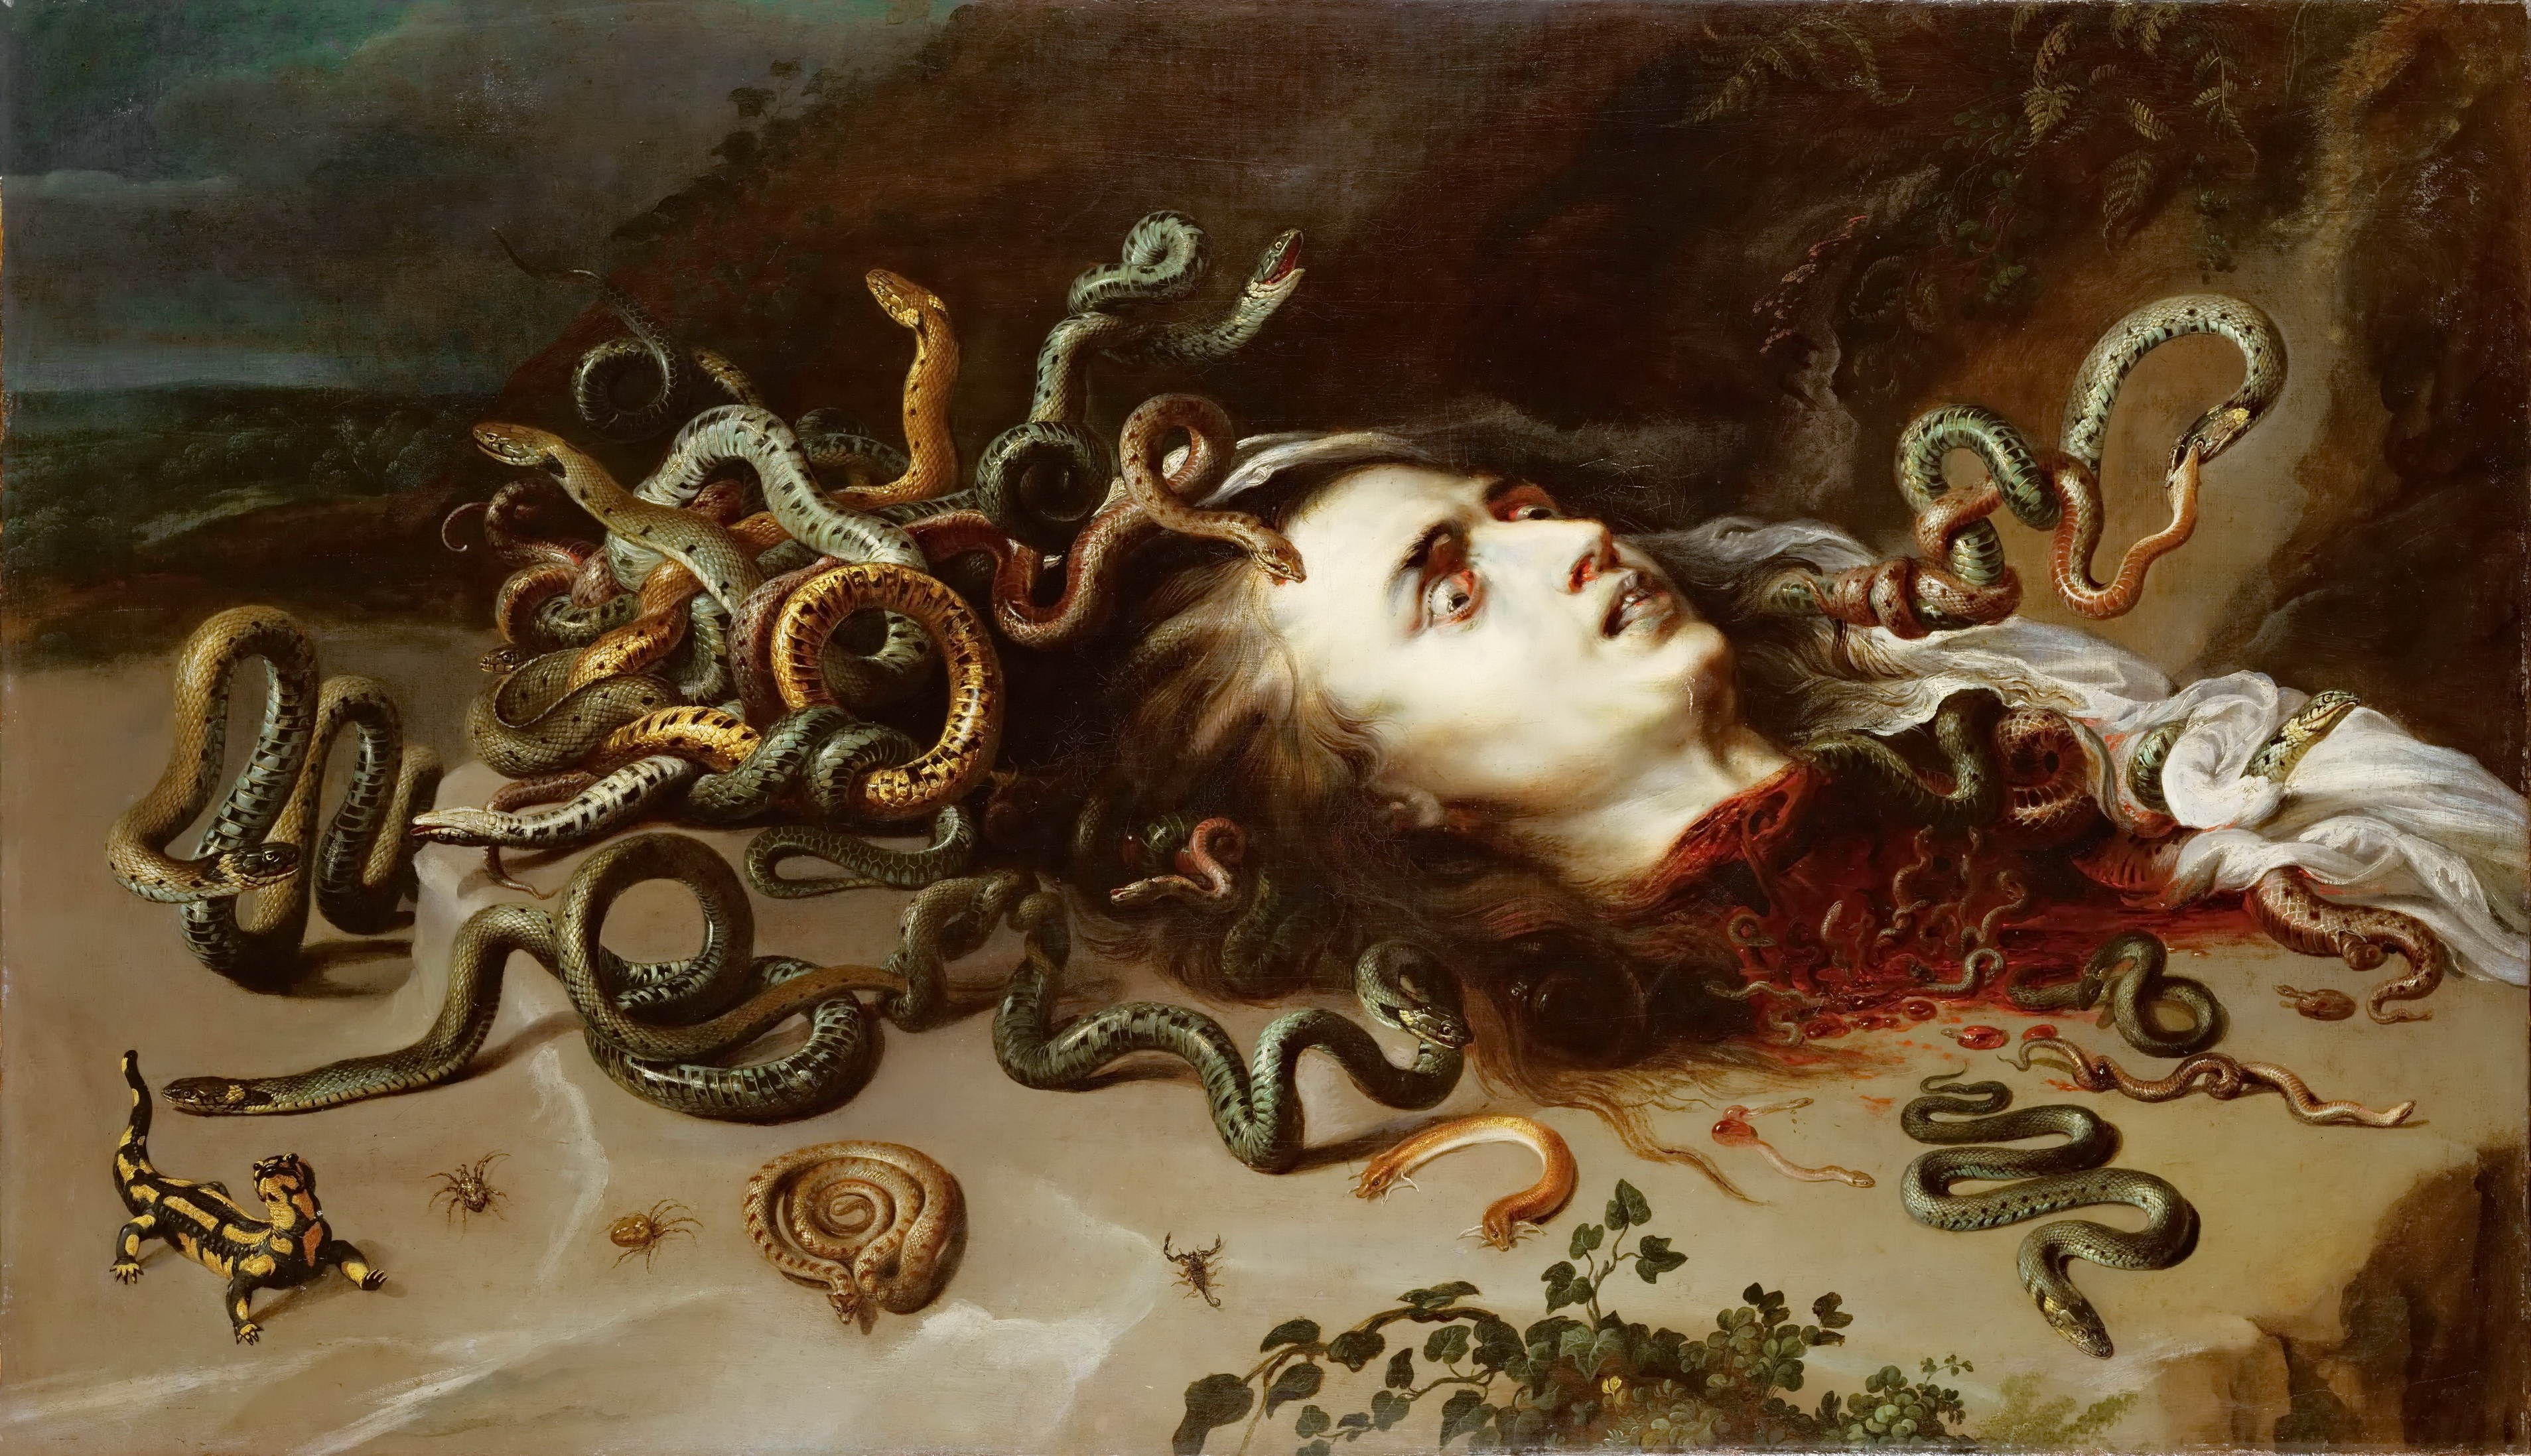 https://upload.wikimedia.org/wikipedia/commons/6/6b/Rubens_Medusa.jpeg